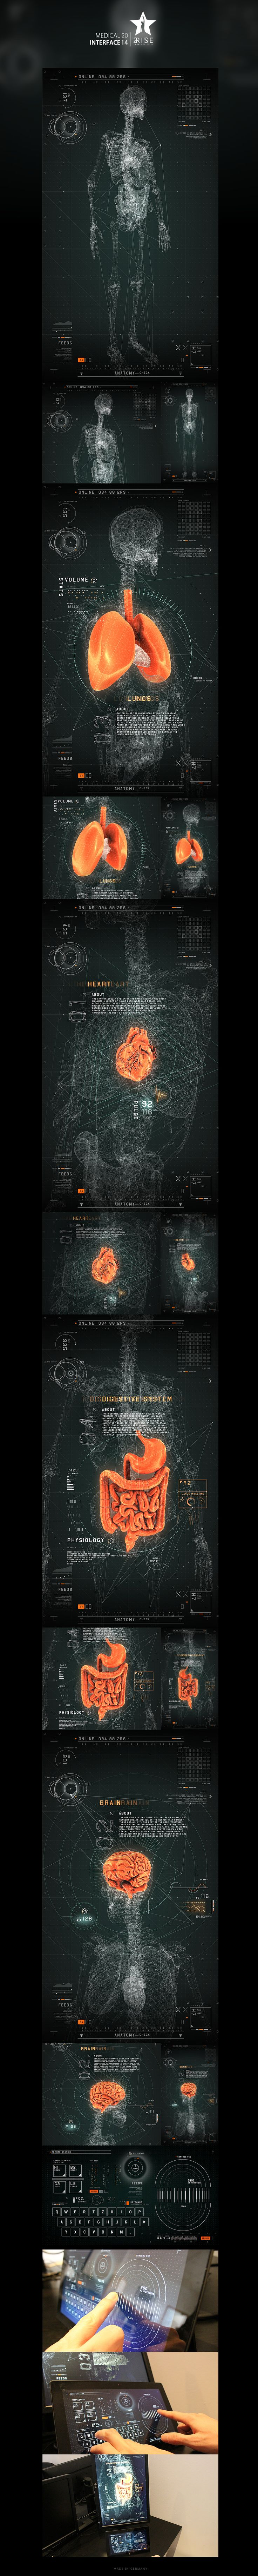 #2RISE FUTURISTIC MEDICAL INTERFACE by Jedi88 on DeviantArt